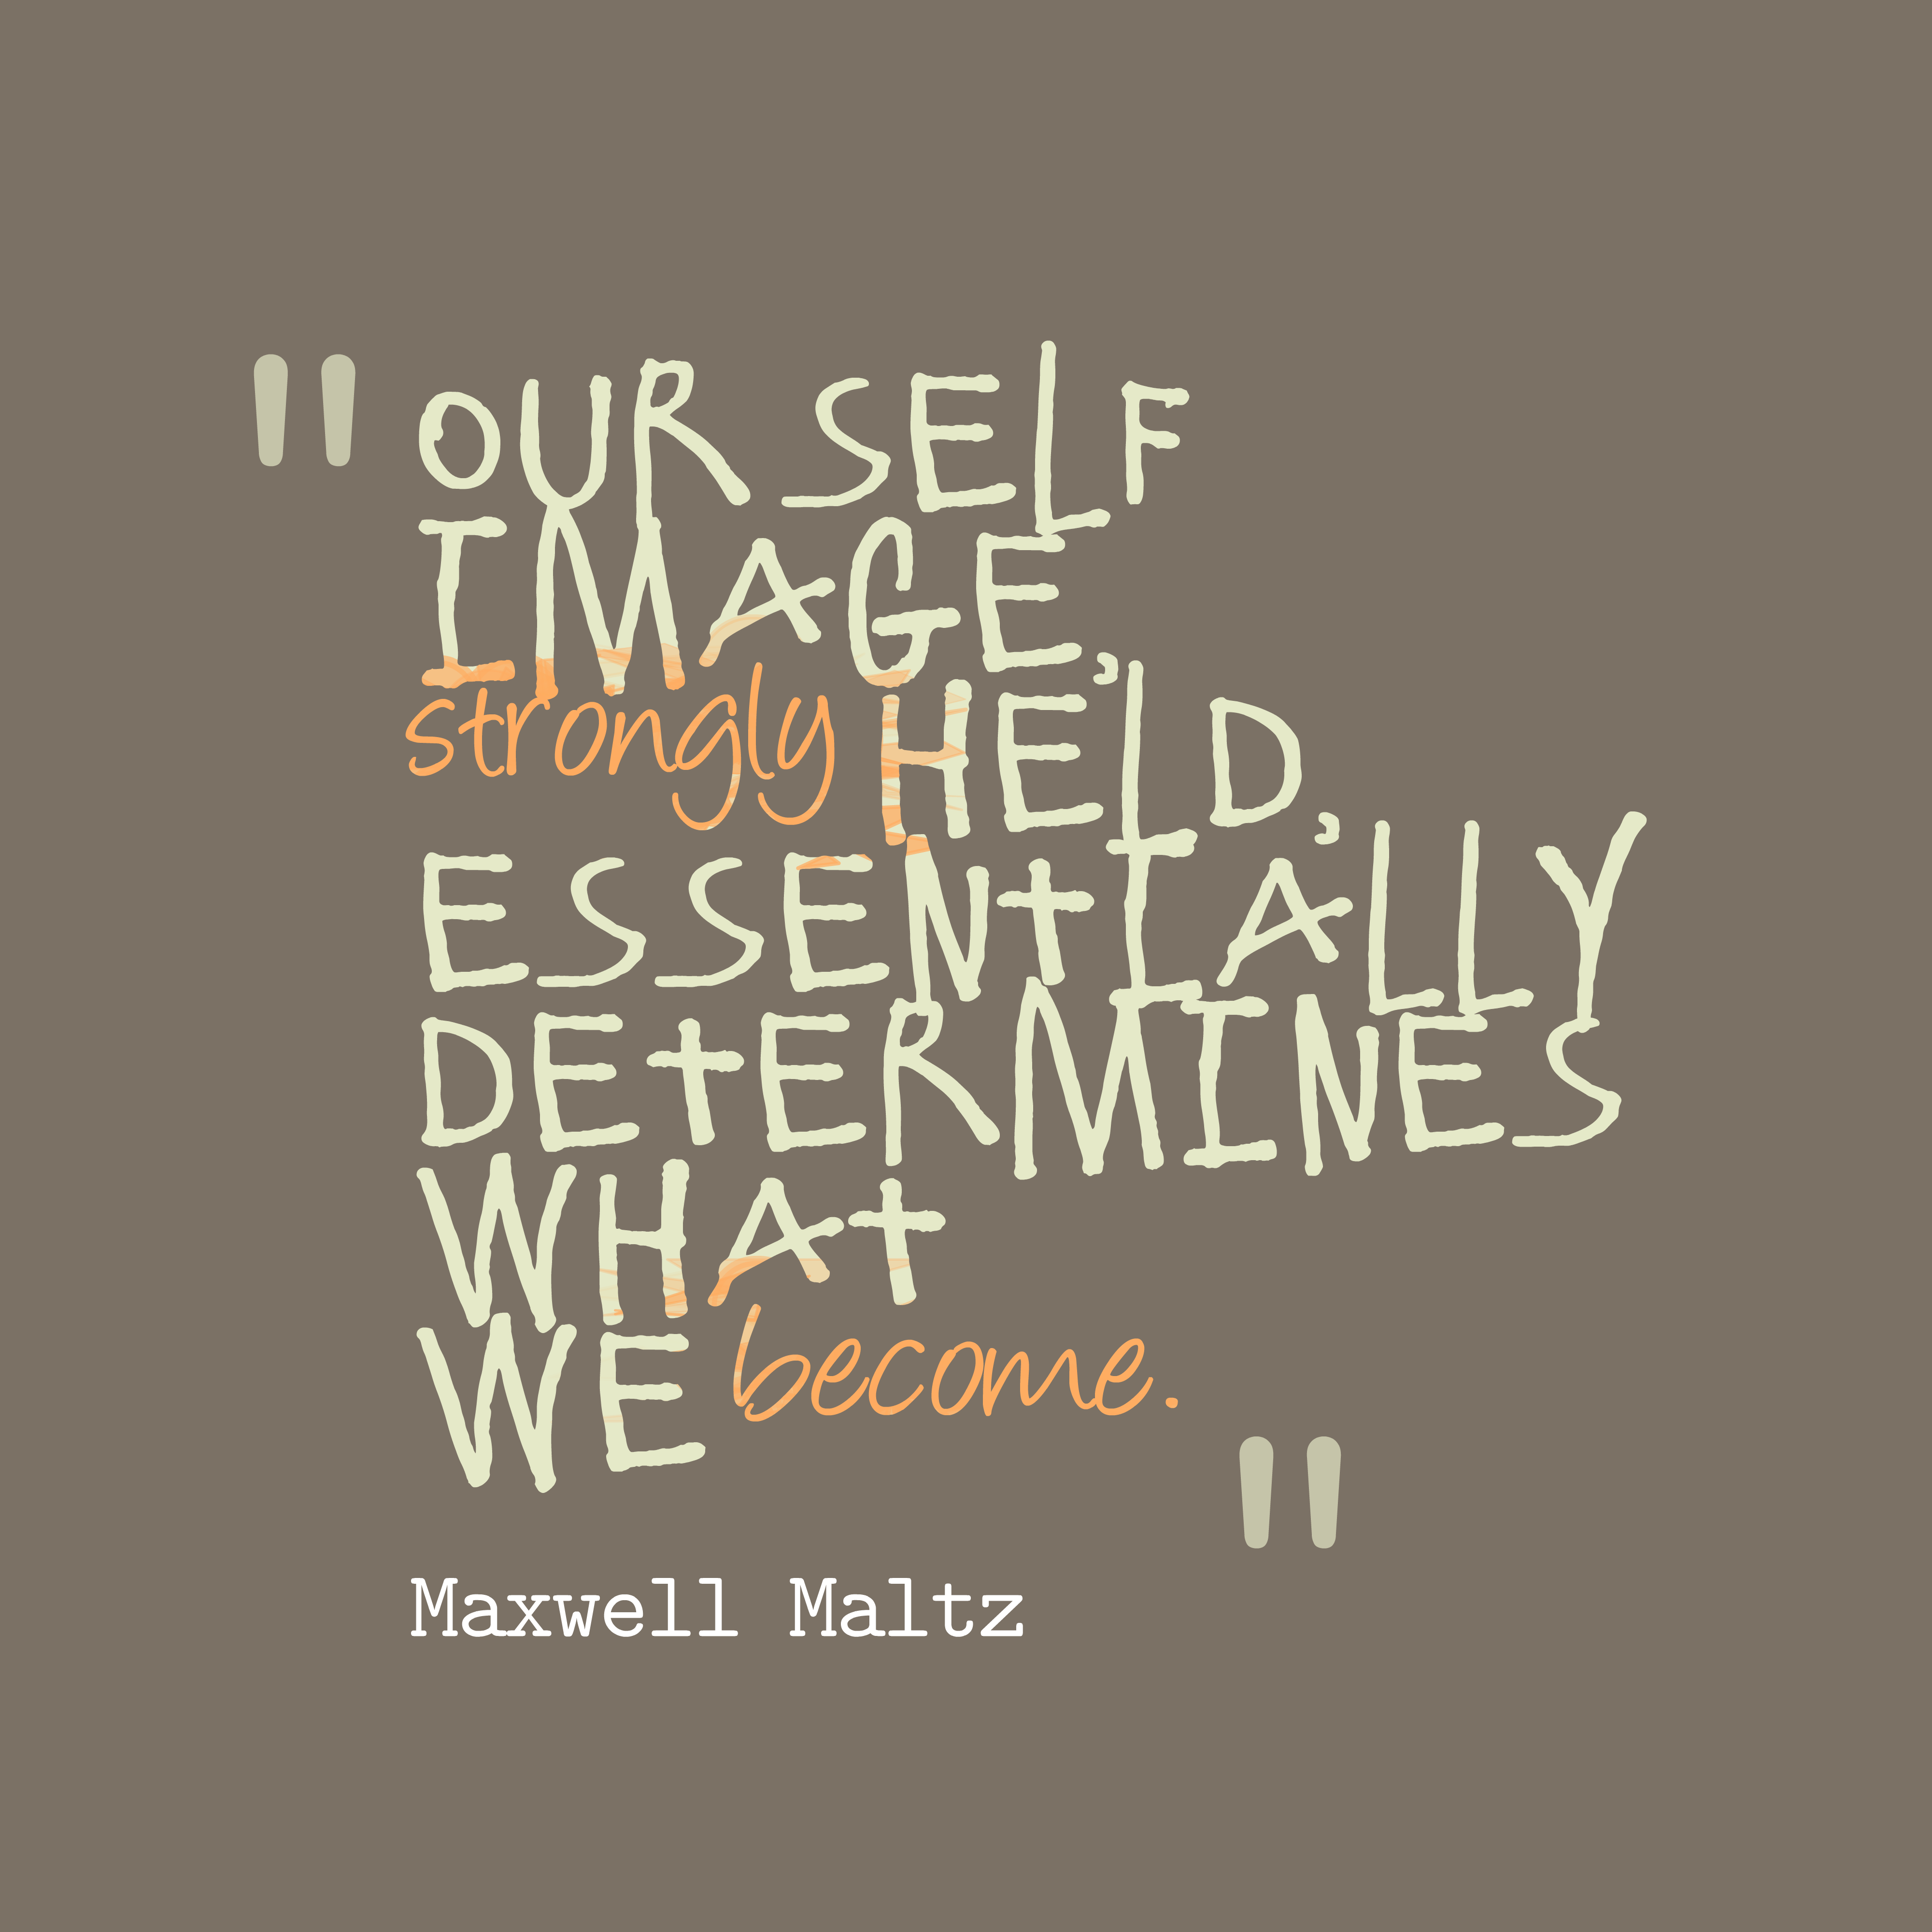 Maxwell Maltz quote about image. | QuotesCover.com's high resolution ...